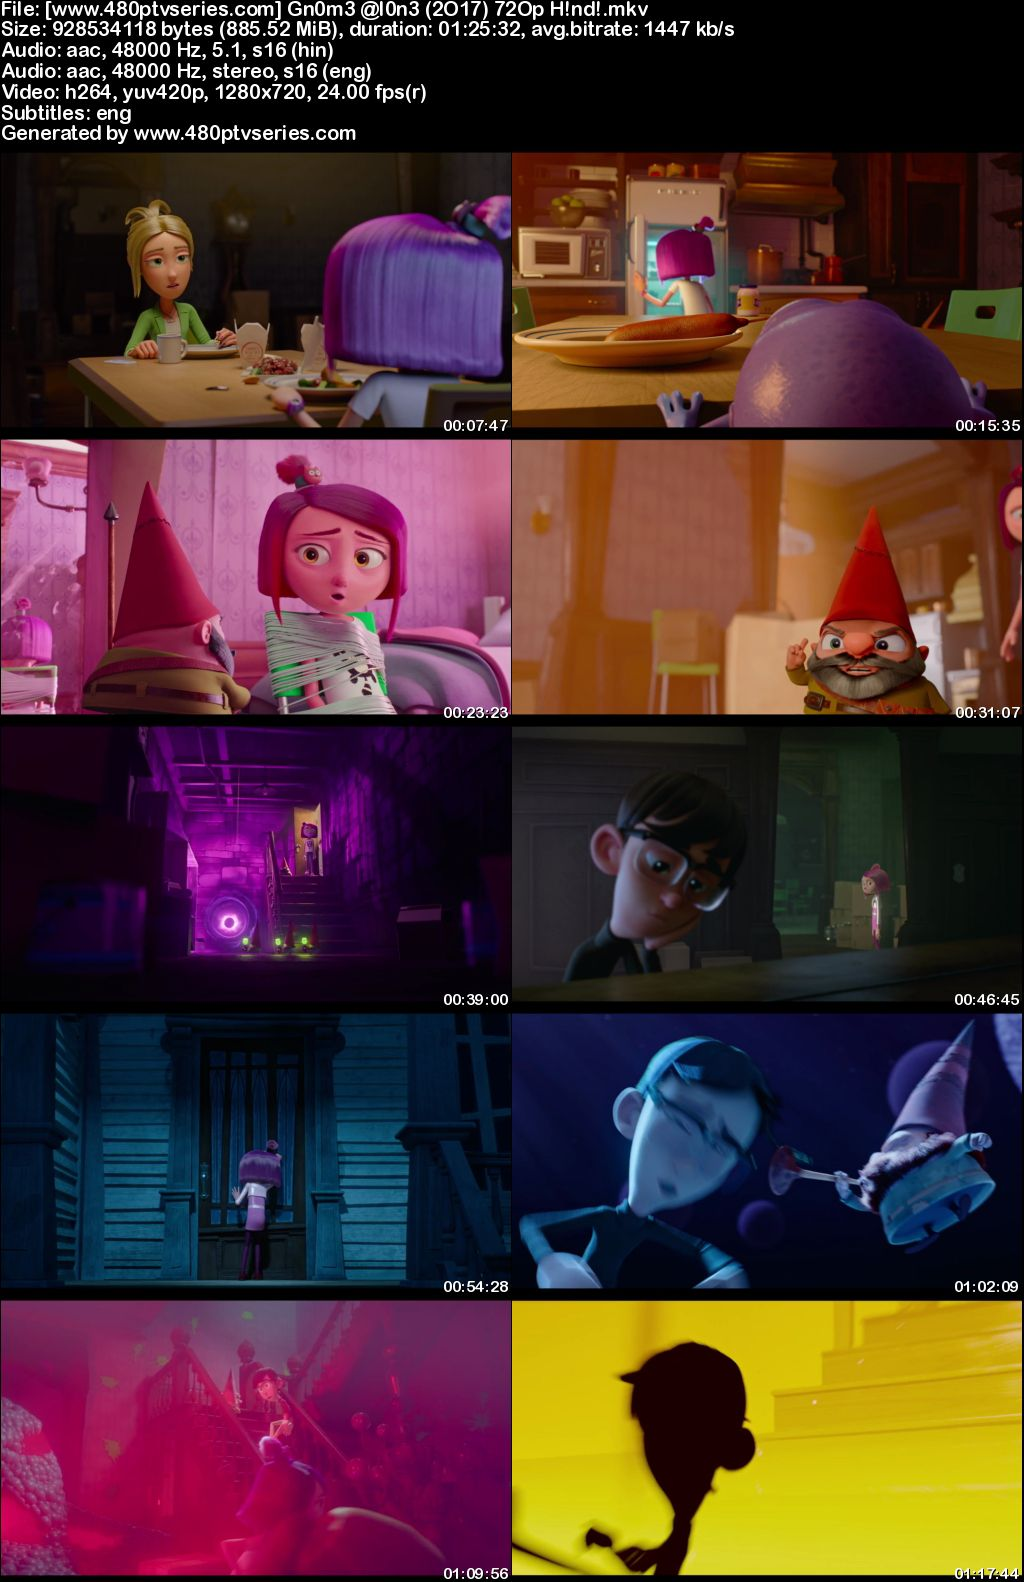 Watch Online Free Gnome Alone (2017) Full Hindi Dual Audio Movie Download 480p 720p Web-DL